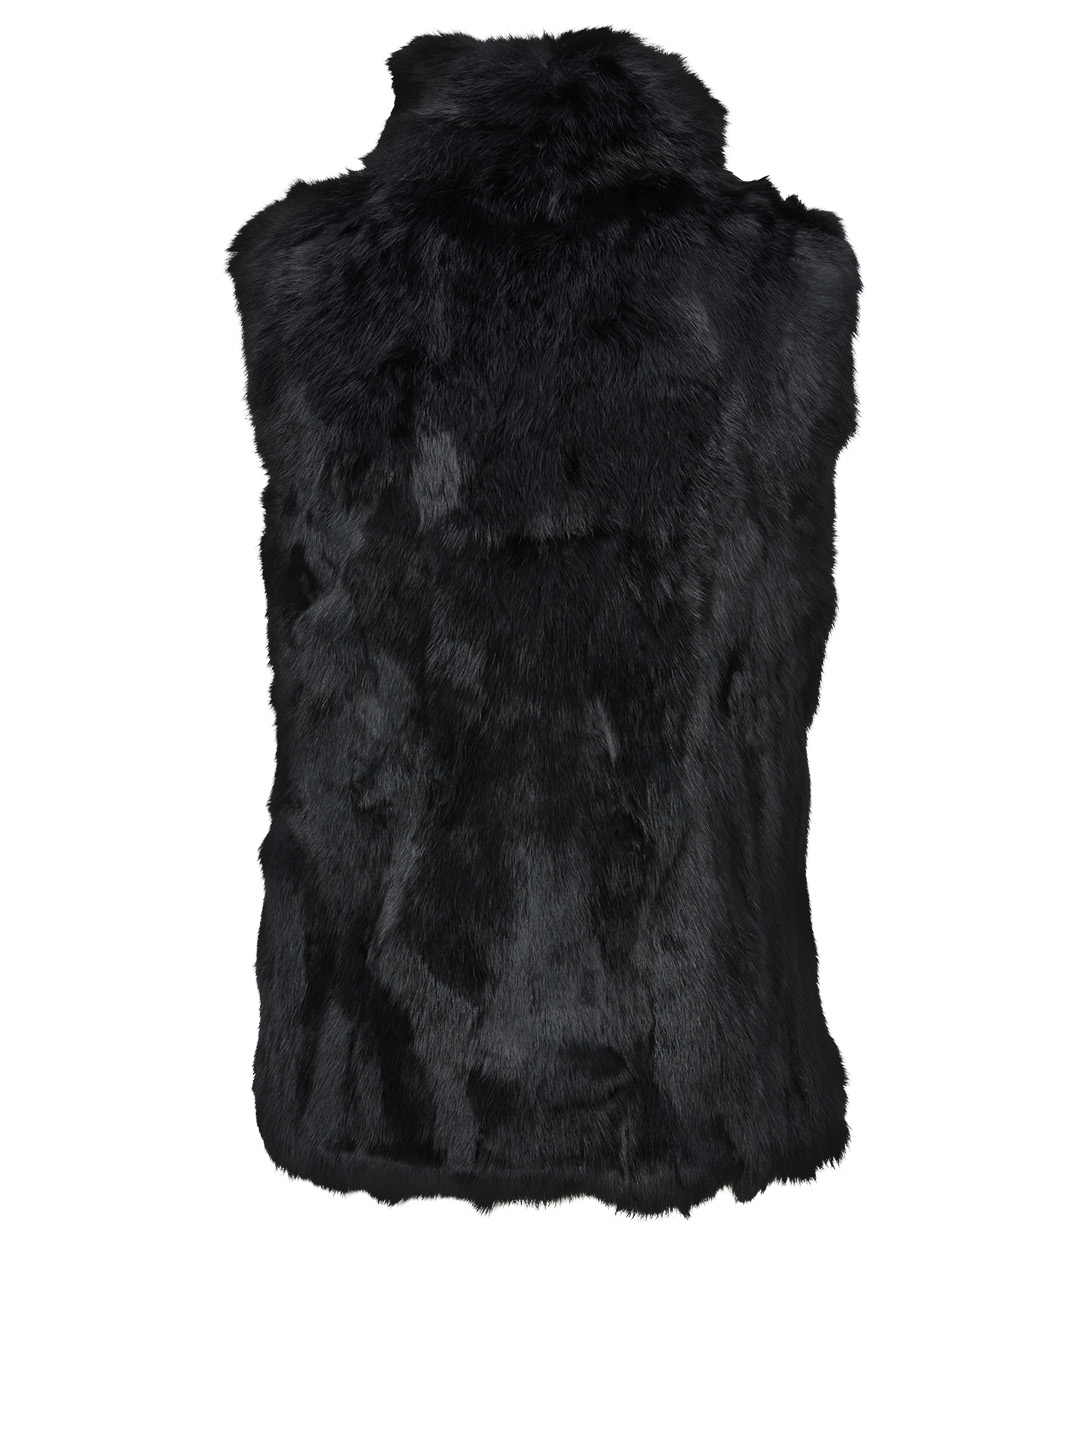 POLOGEORGIS Rabbit Fur Patchwork Vest Women's Black